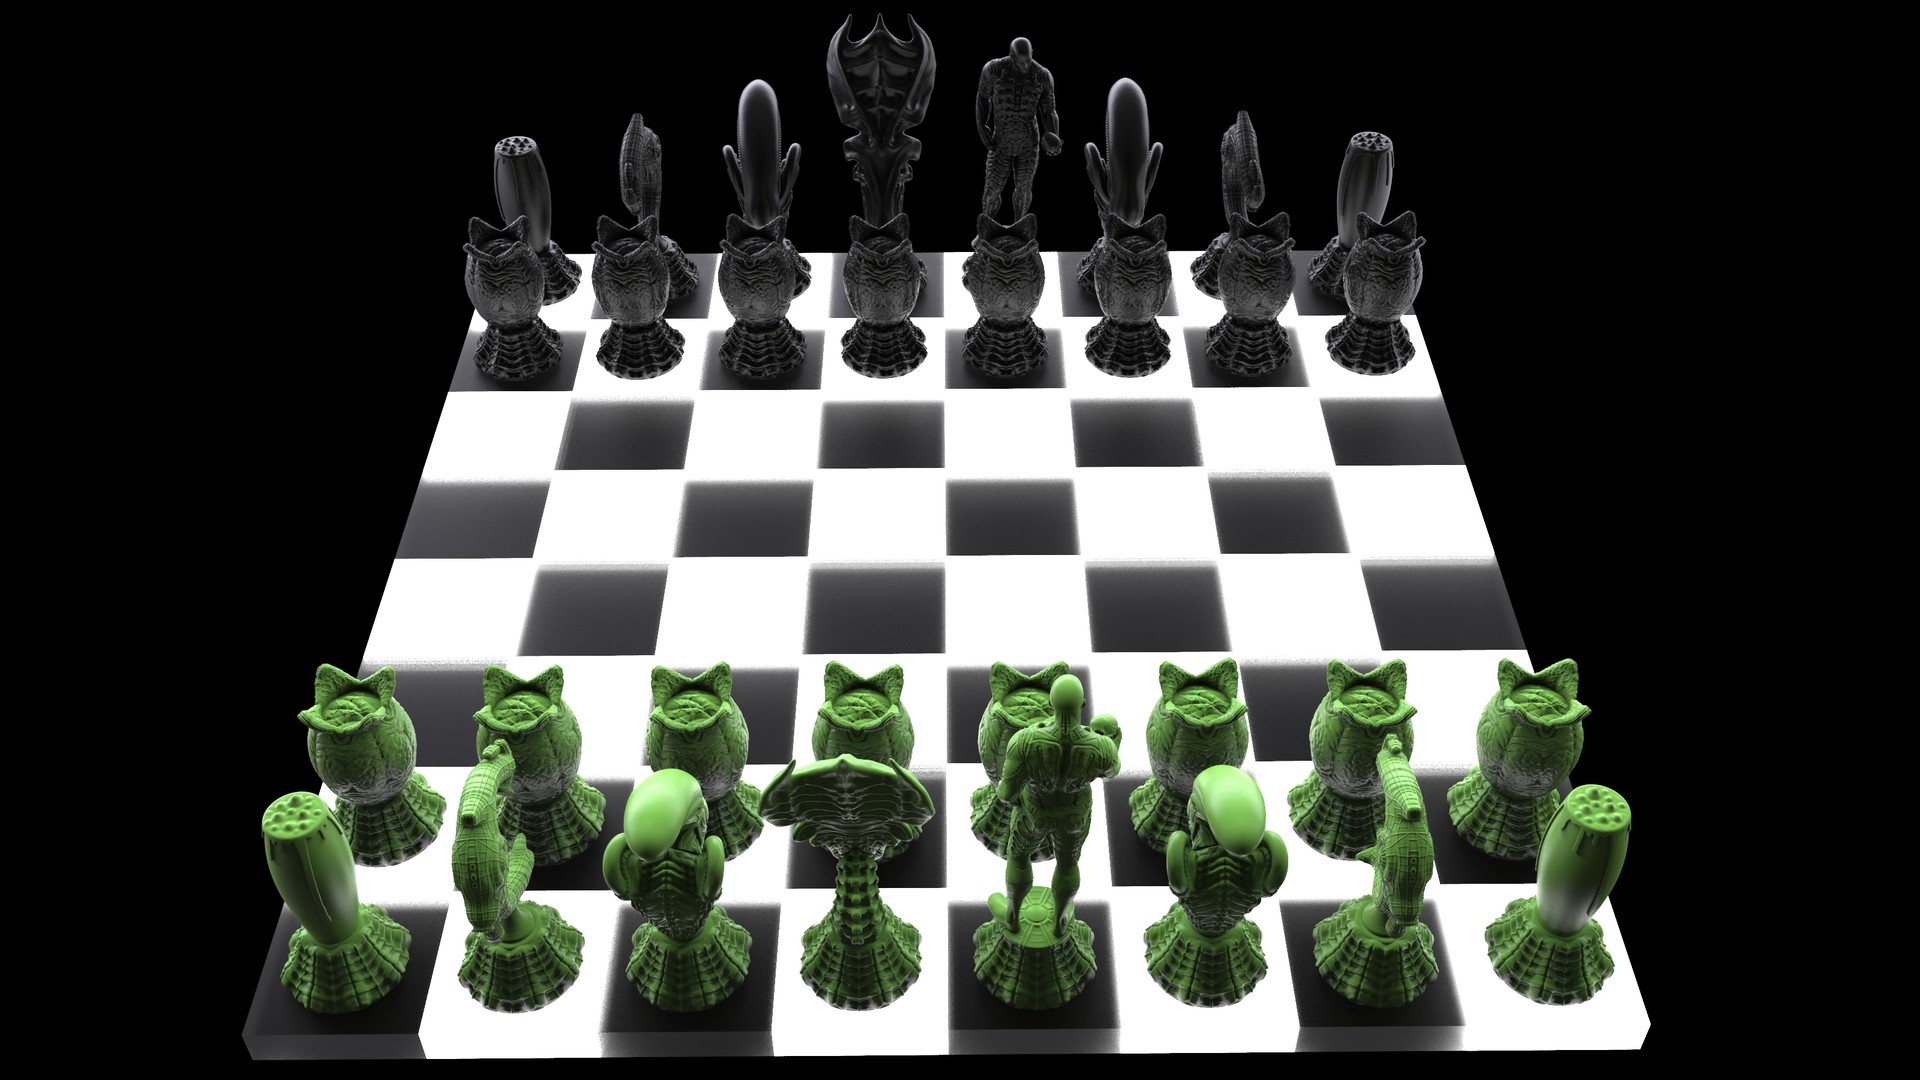 Ken calvert alien chess renders 1070